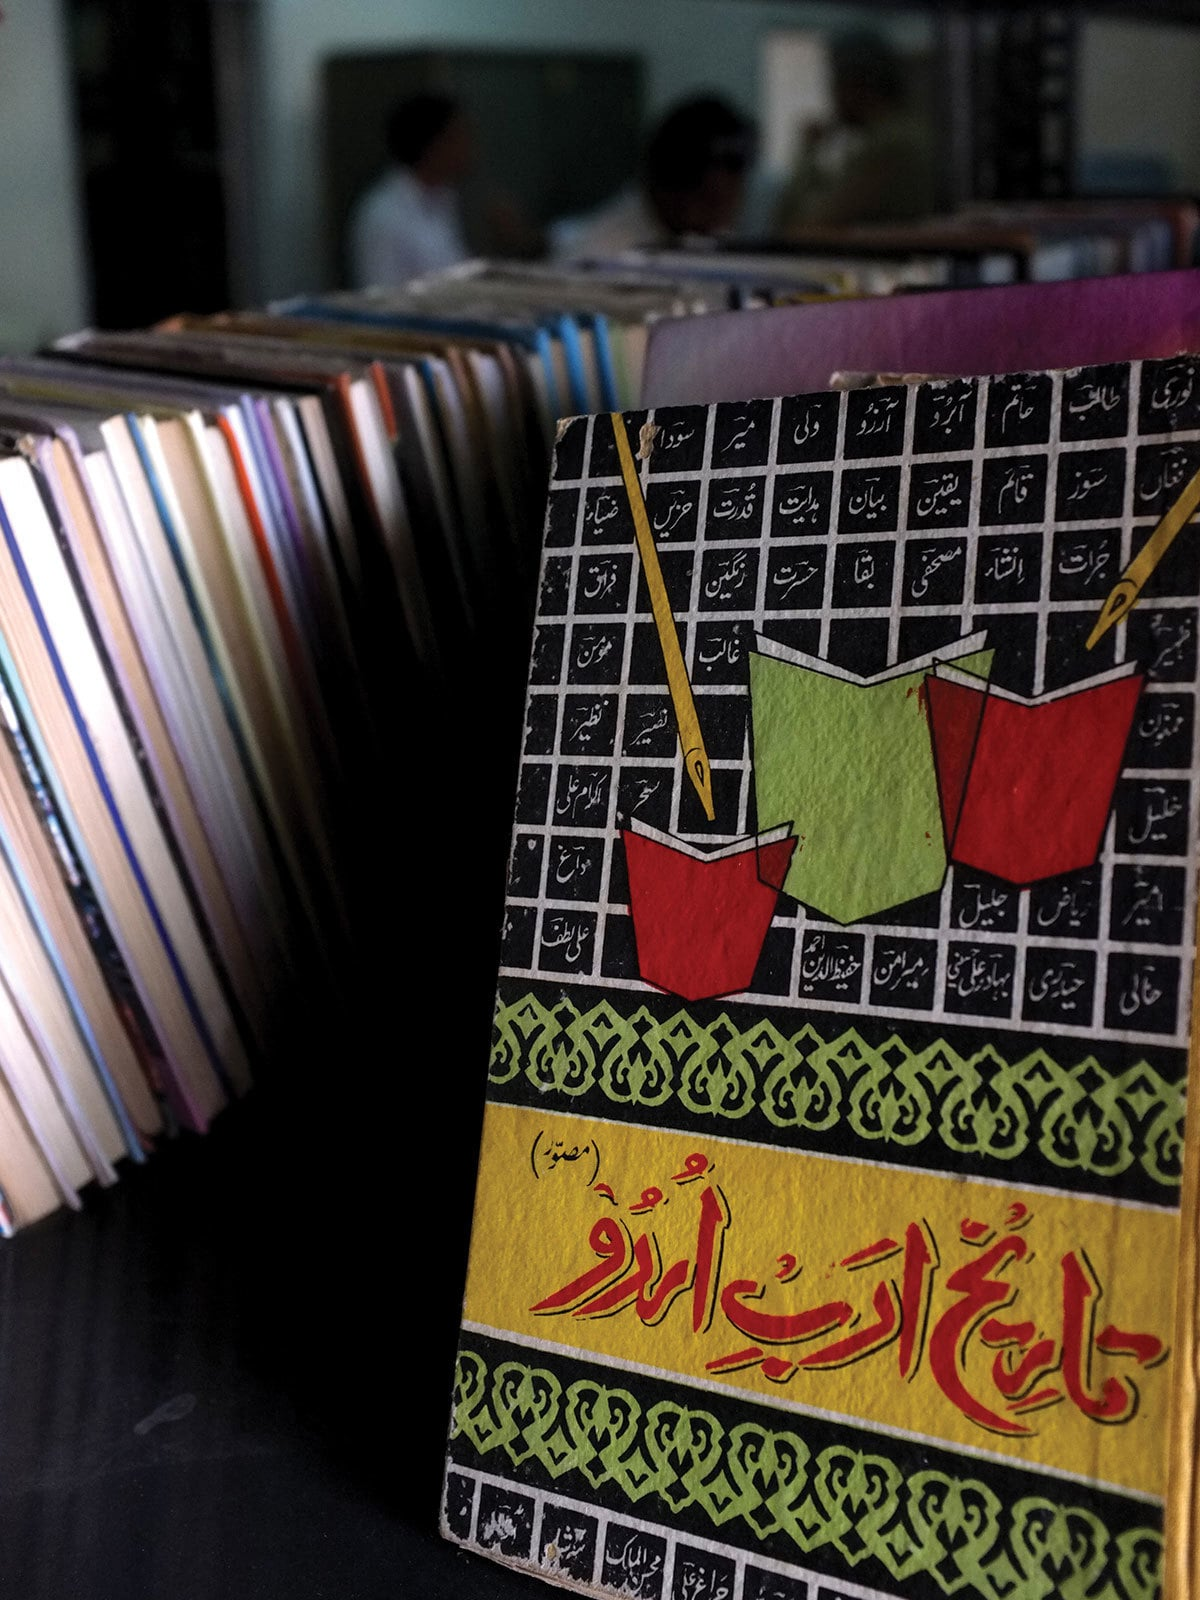 Inside the Anjuman Taraqqi-e-Urdu's library in Karachi | Arif Mahmood, White Star